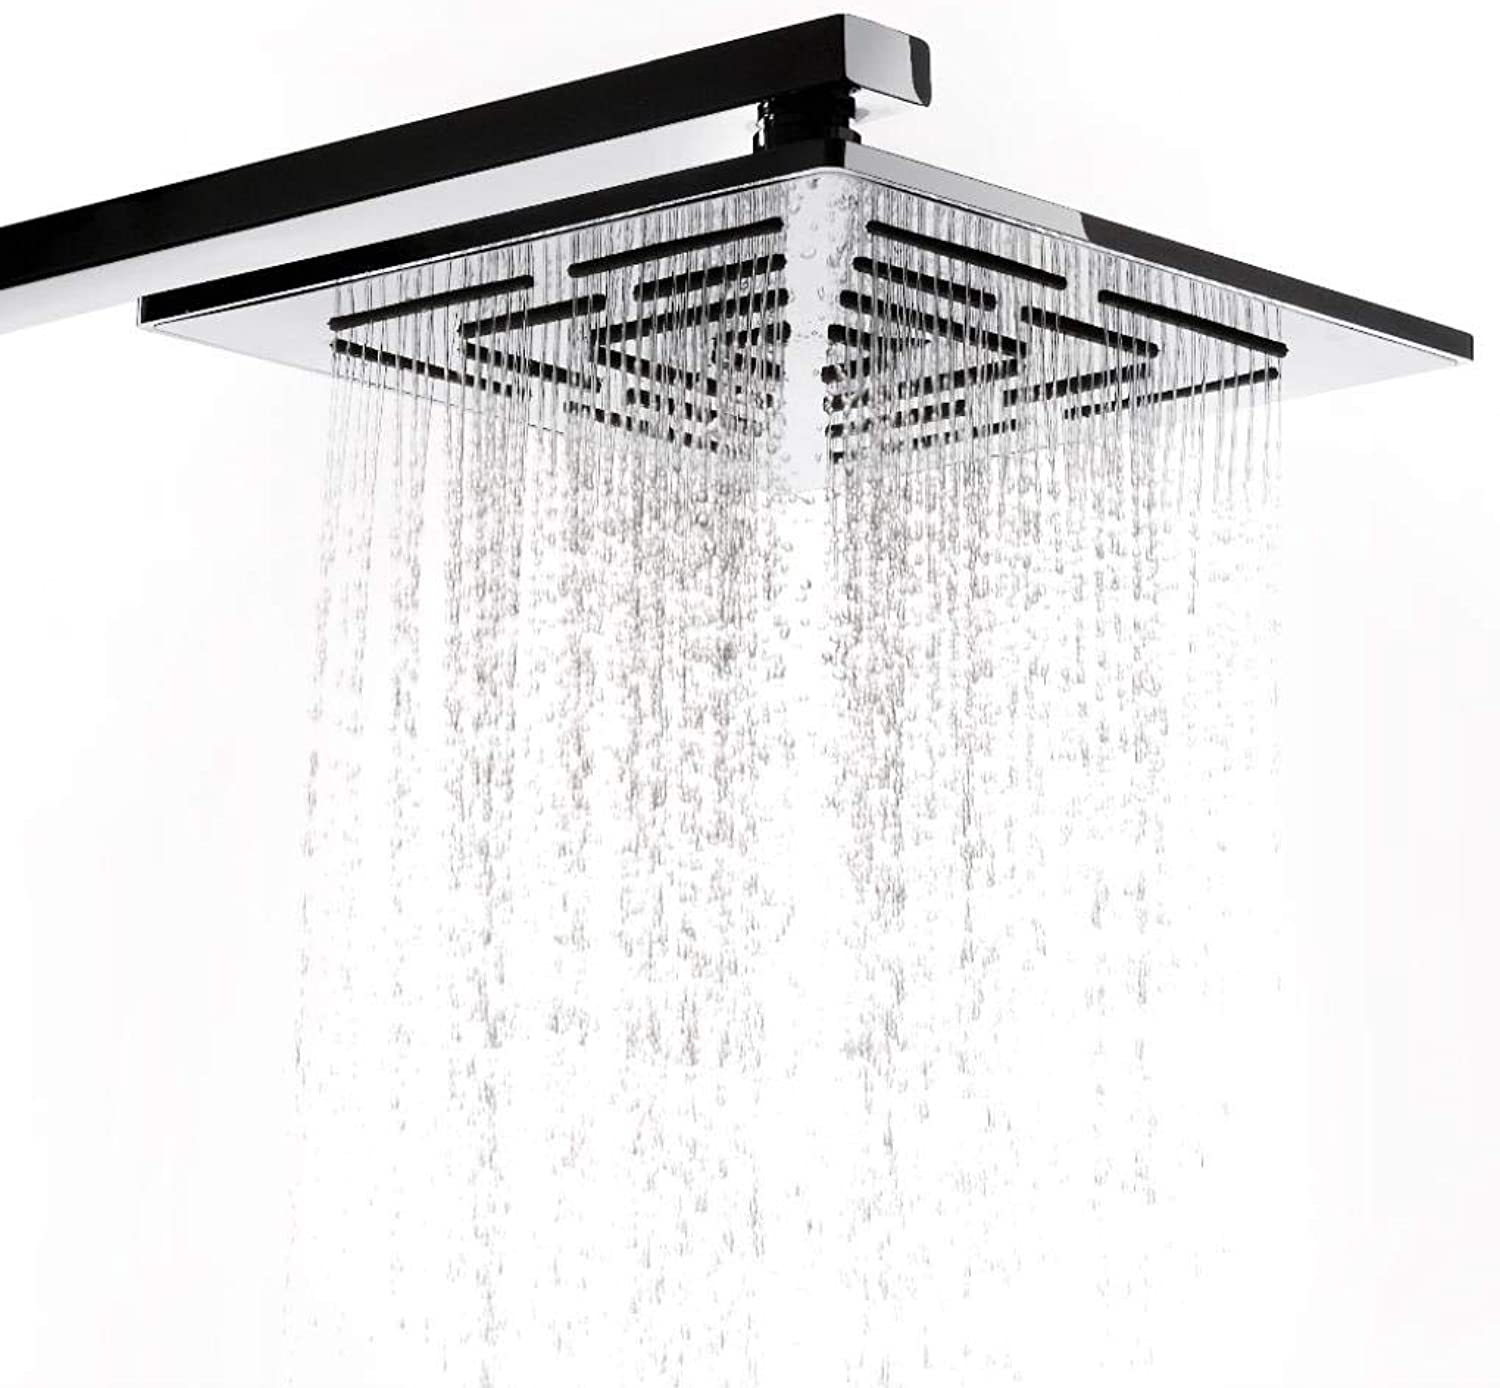 Yongse 8 Inch Shower Head Holes Water Stainless Steel Chrome Finish Square Rainfall Shower Head